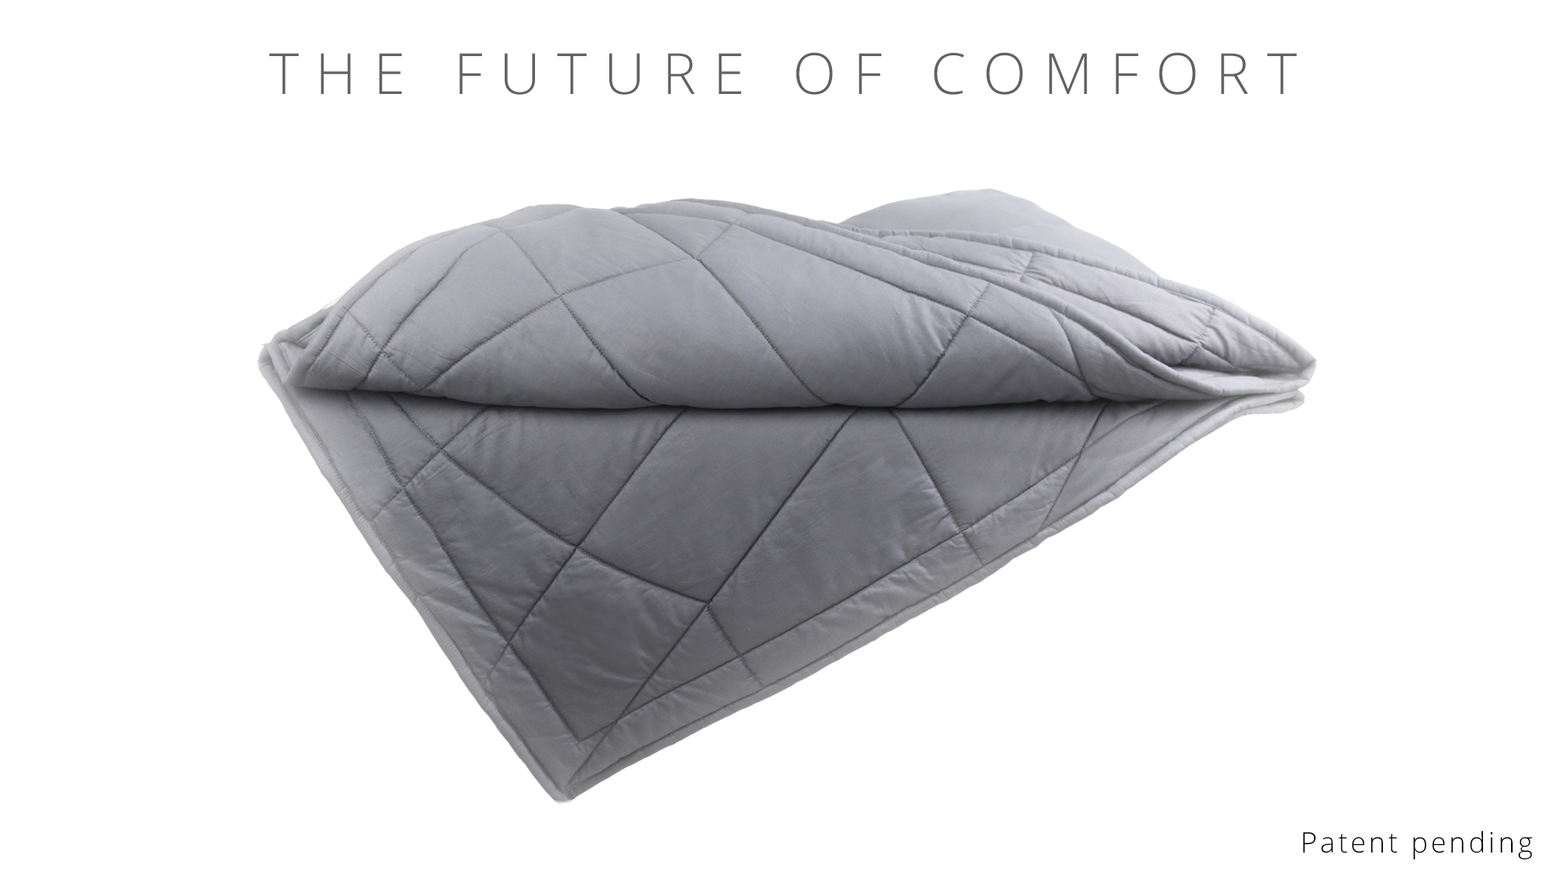 All natural deep pressure stimulation blanket engineered to deliver relaxing calm for sleep, stress, and anxiety that's 60% thinner.